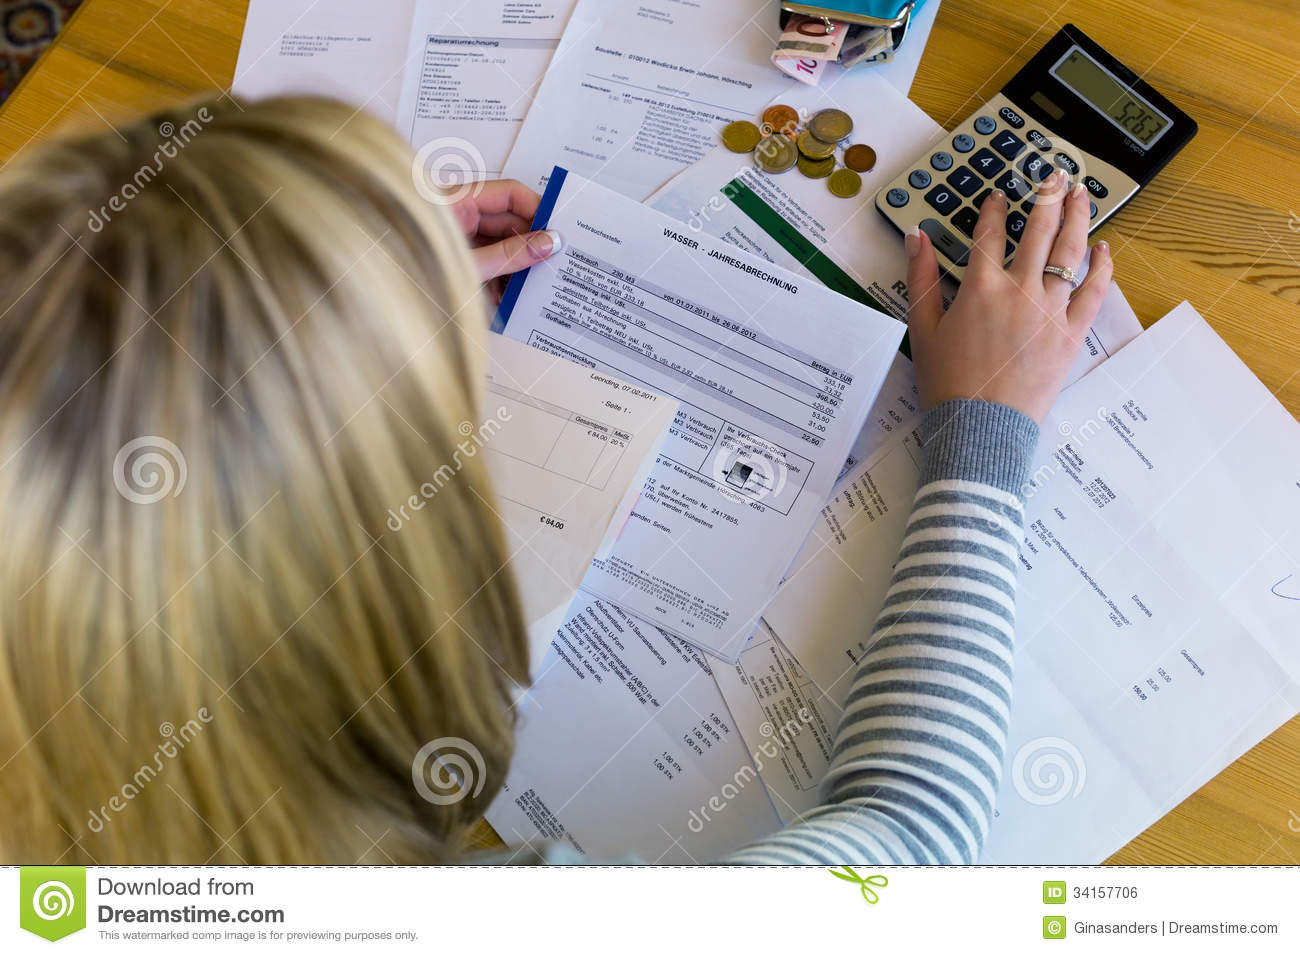 Woman with debts and bills